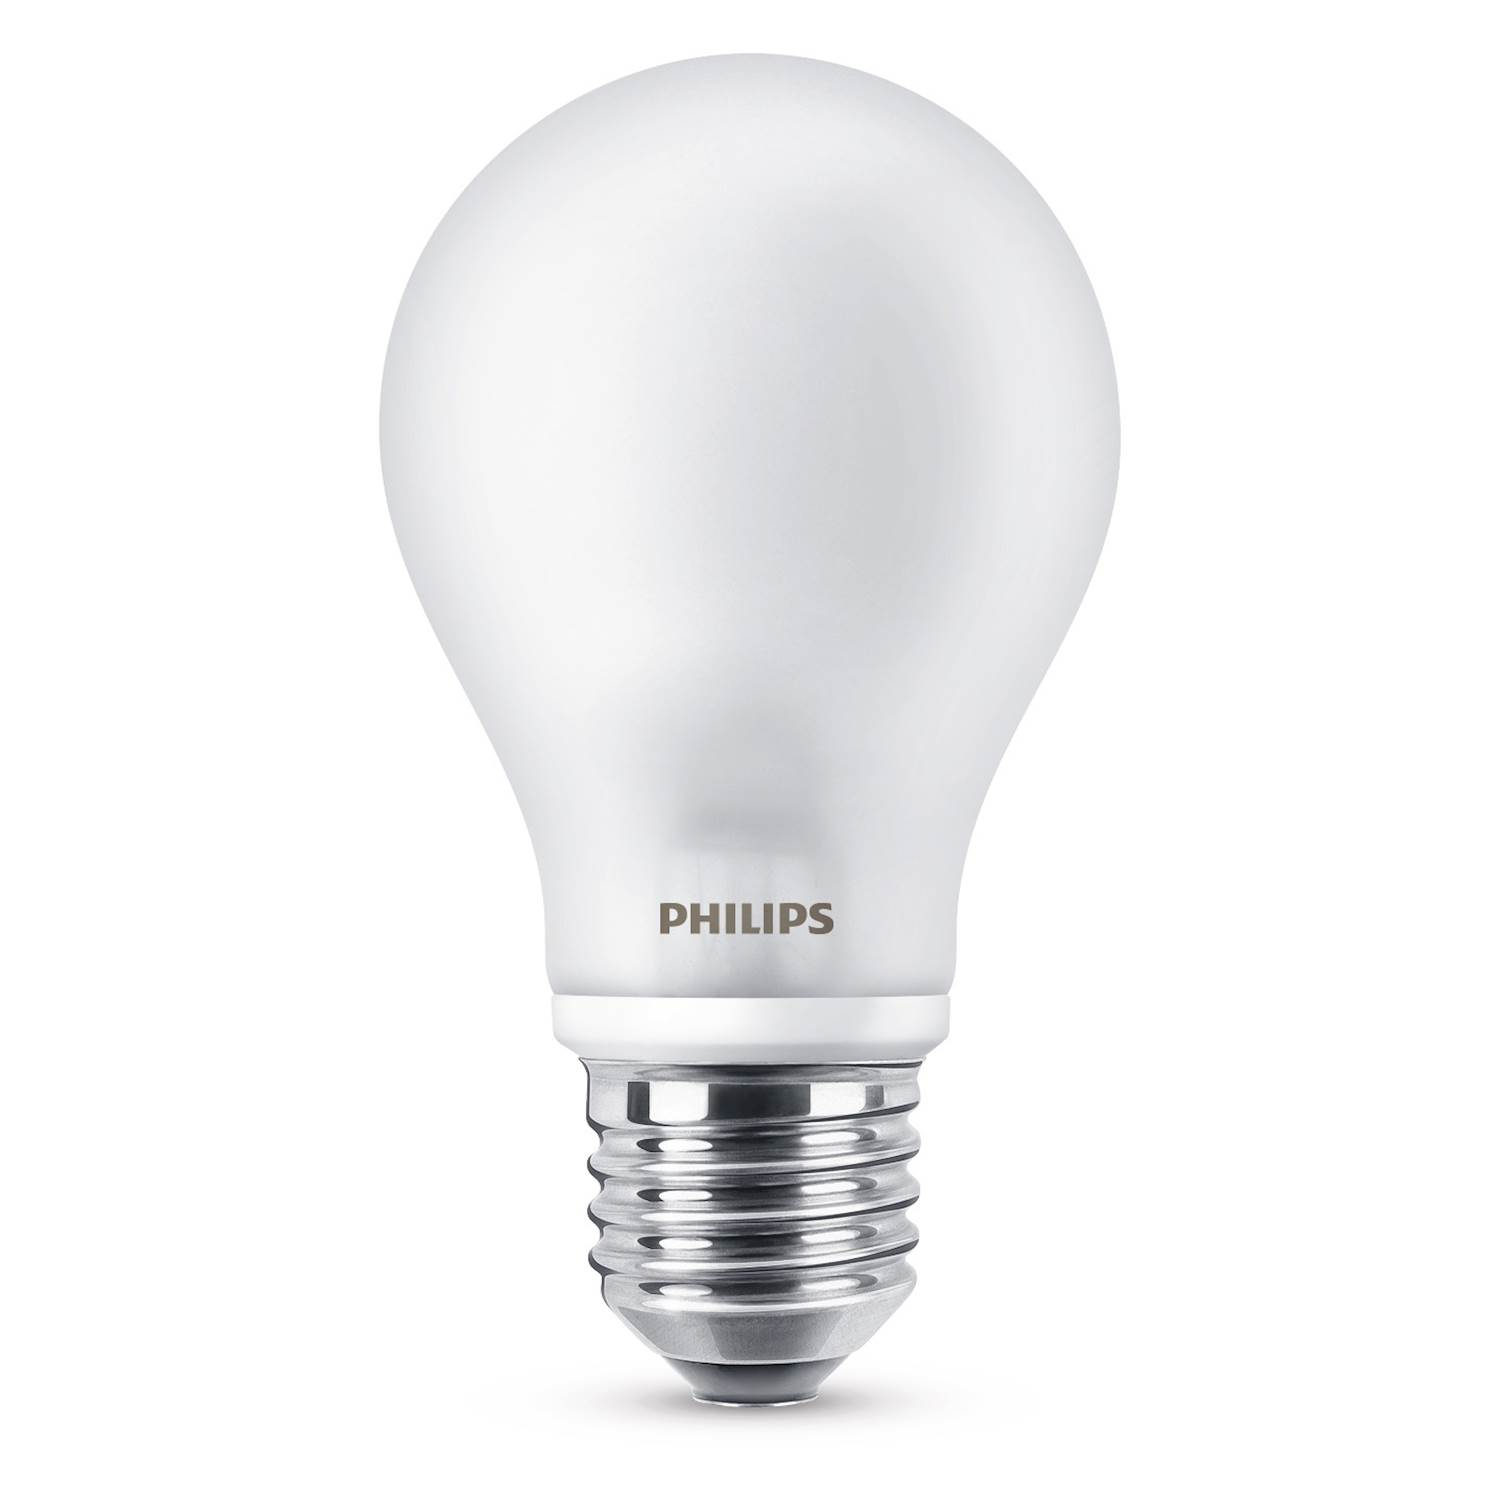 Philips LEDCL NORMAL 7W E27 VV FR ND